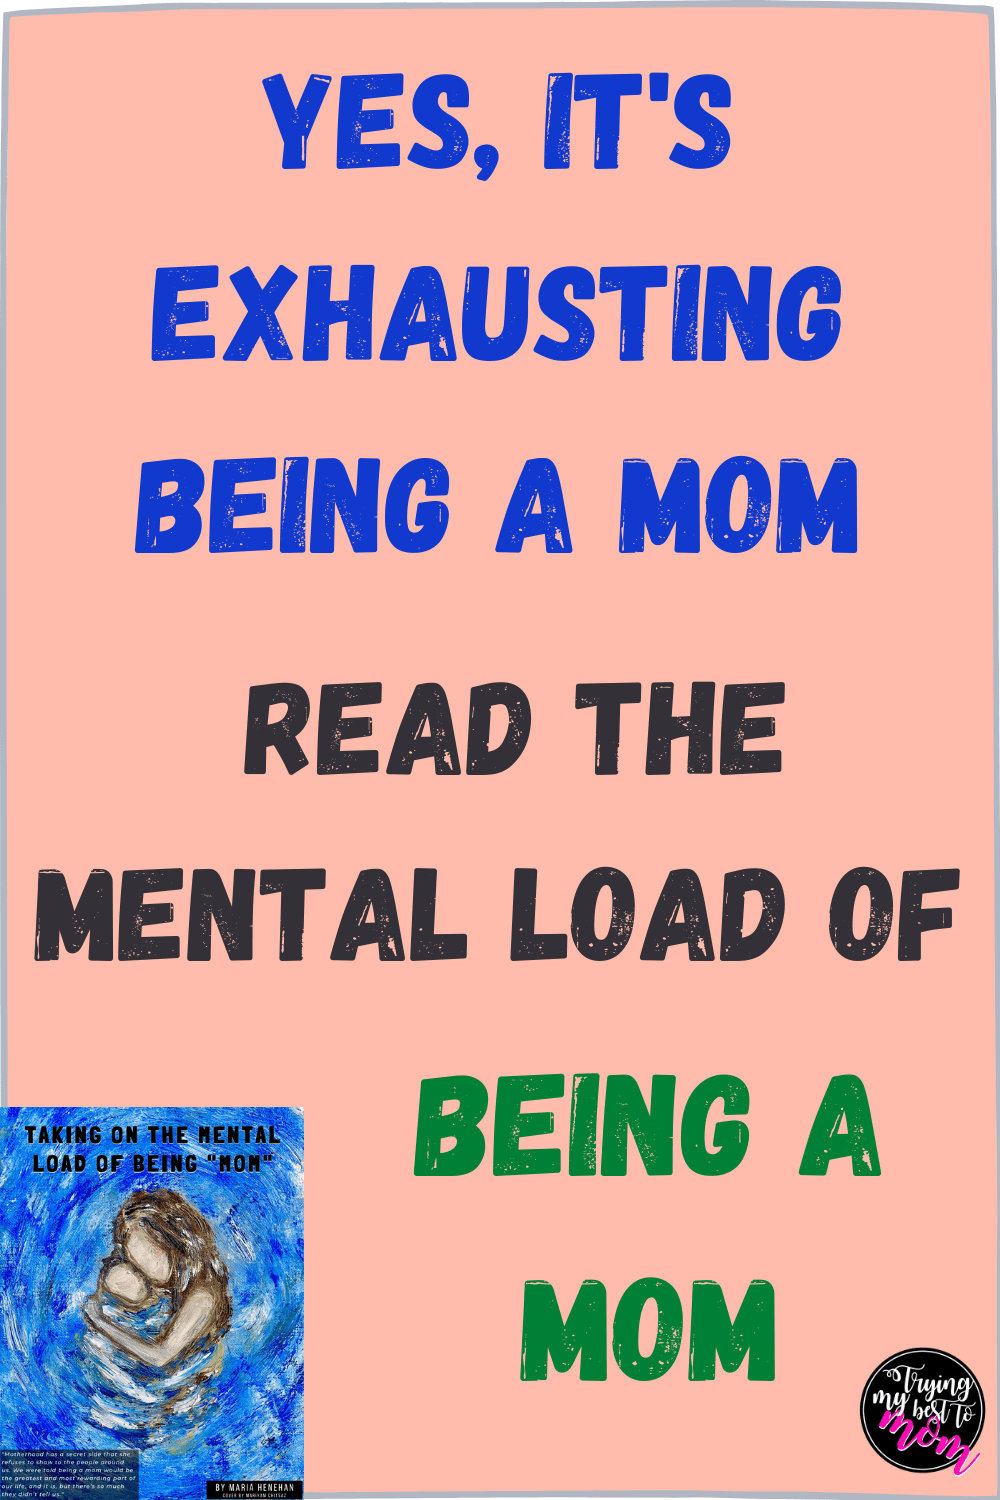 The Mental Load of Being a Mom